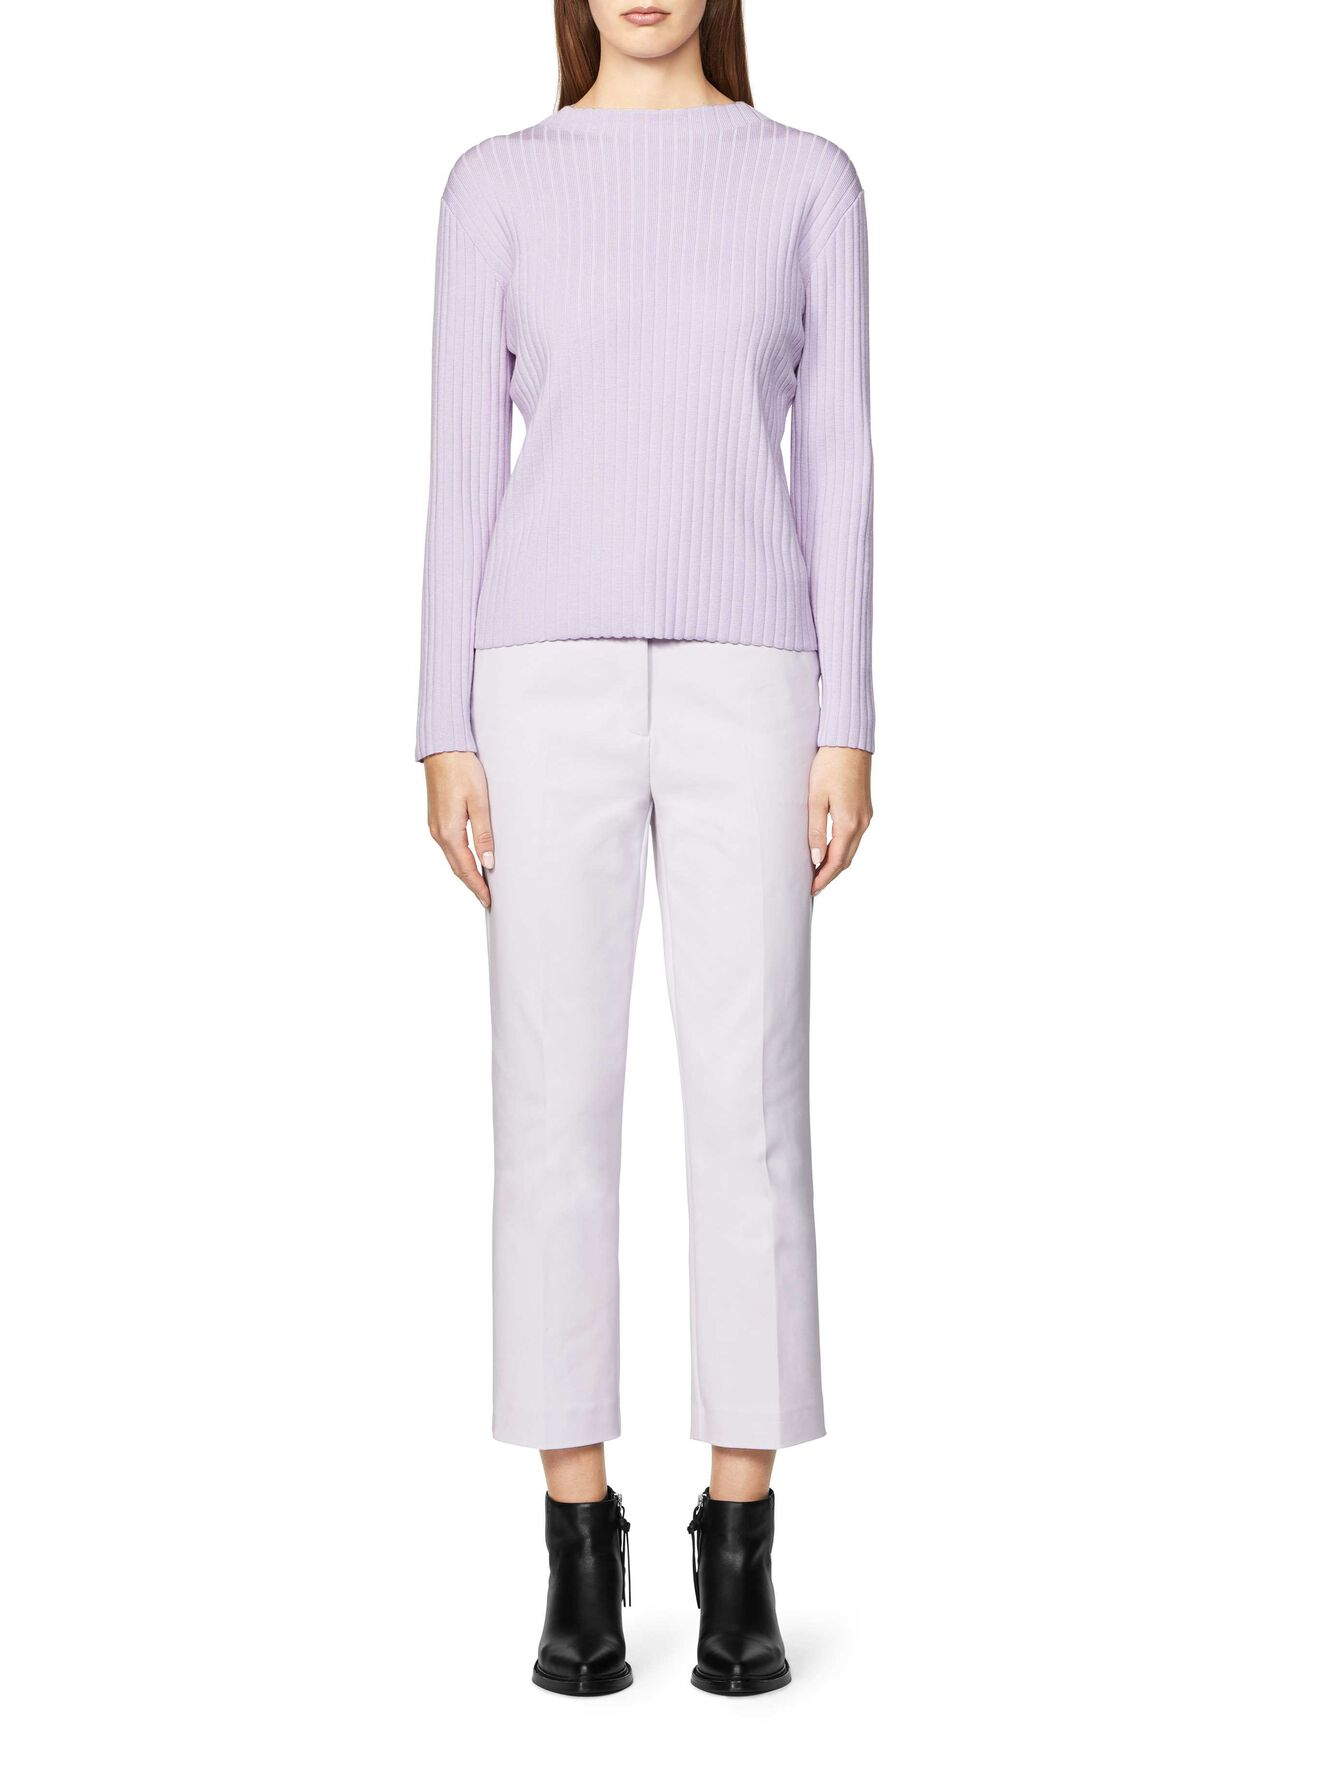 MIRZ TROUSERS in Lavender Blue from Tiger of Sweden